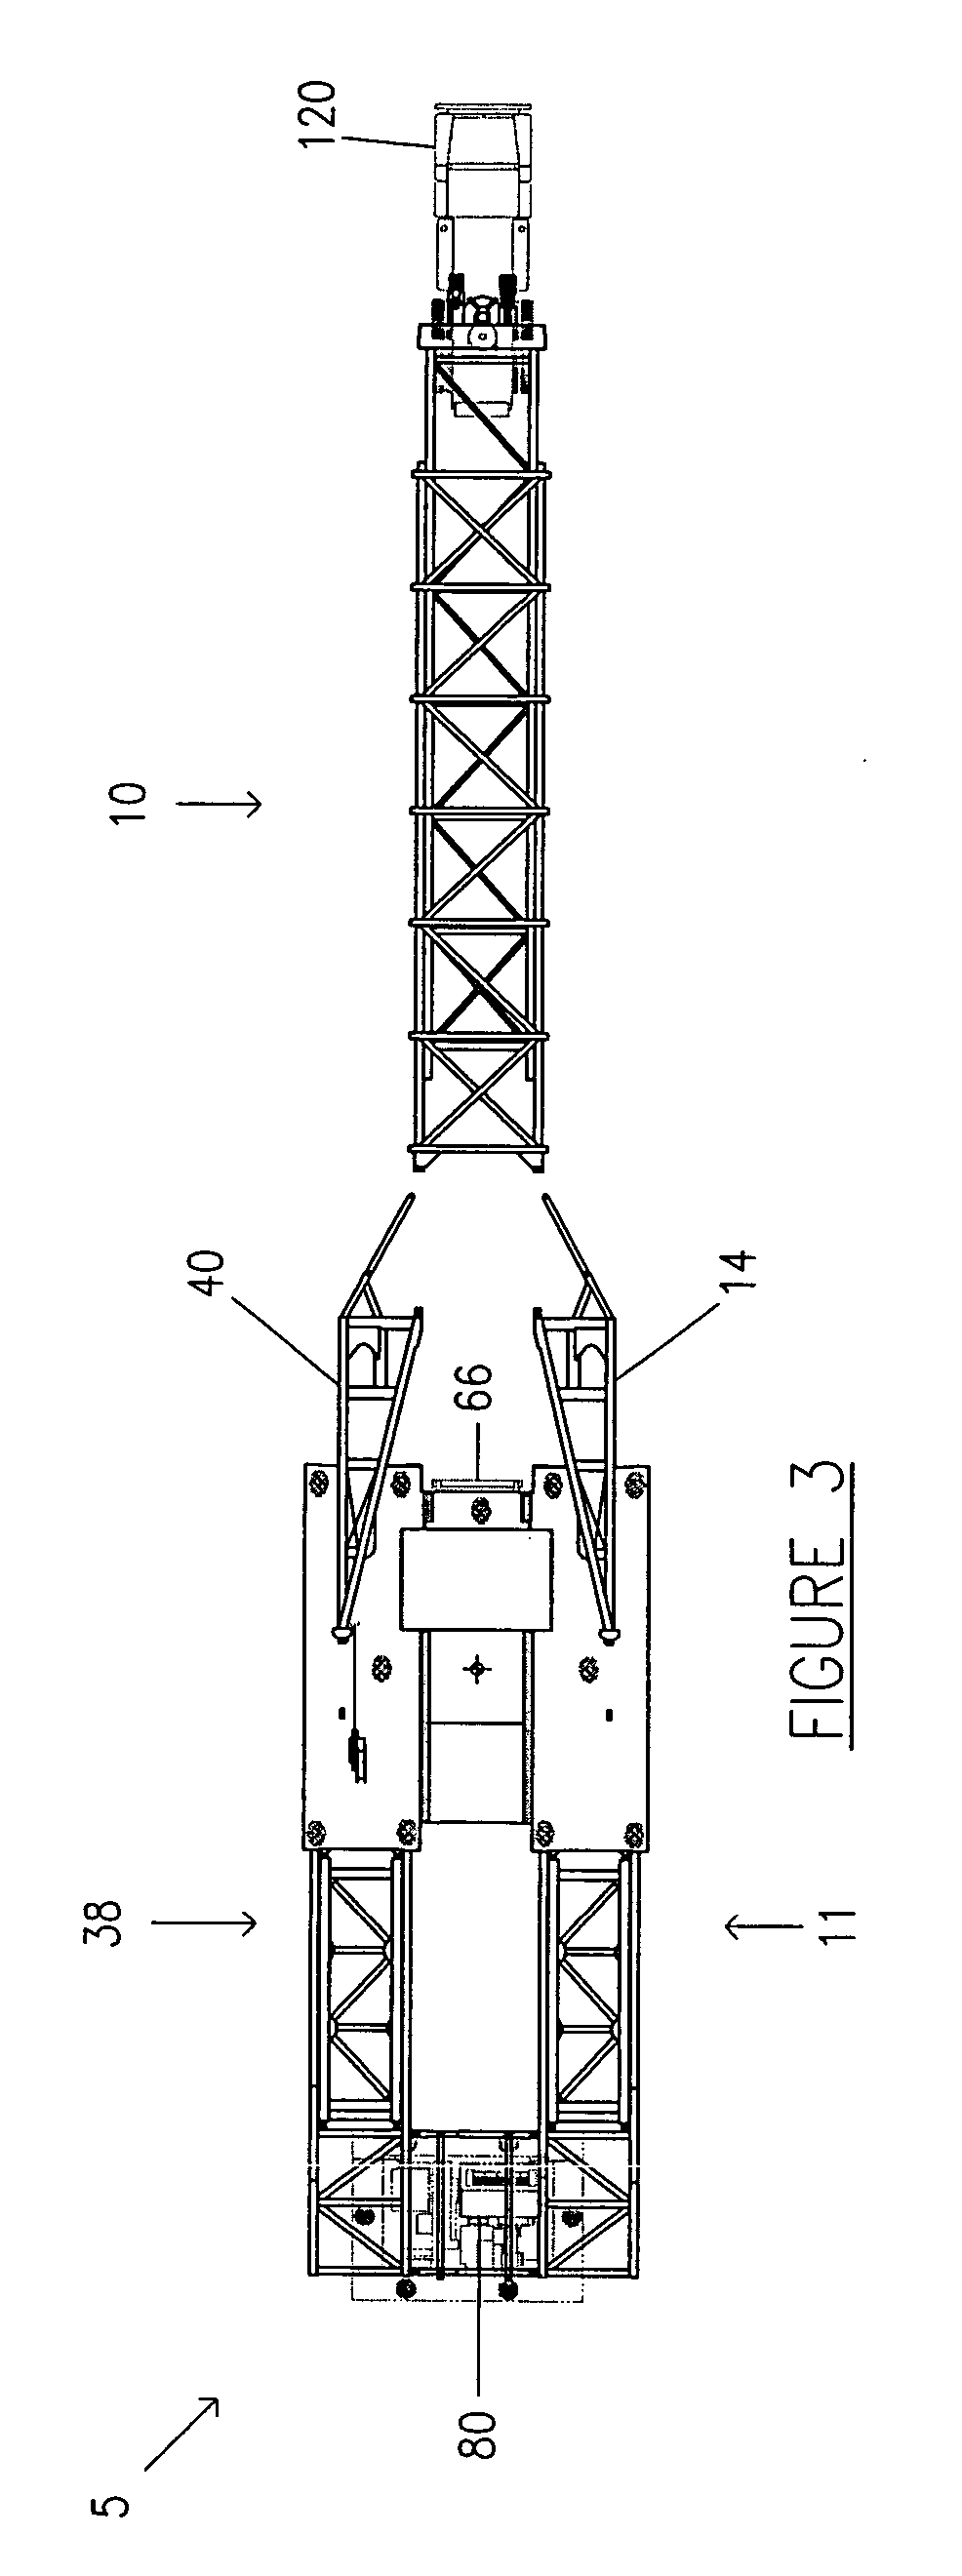 Rig Floor Elevation : Patent us  automatic method for installing